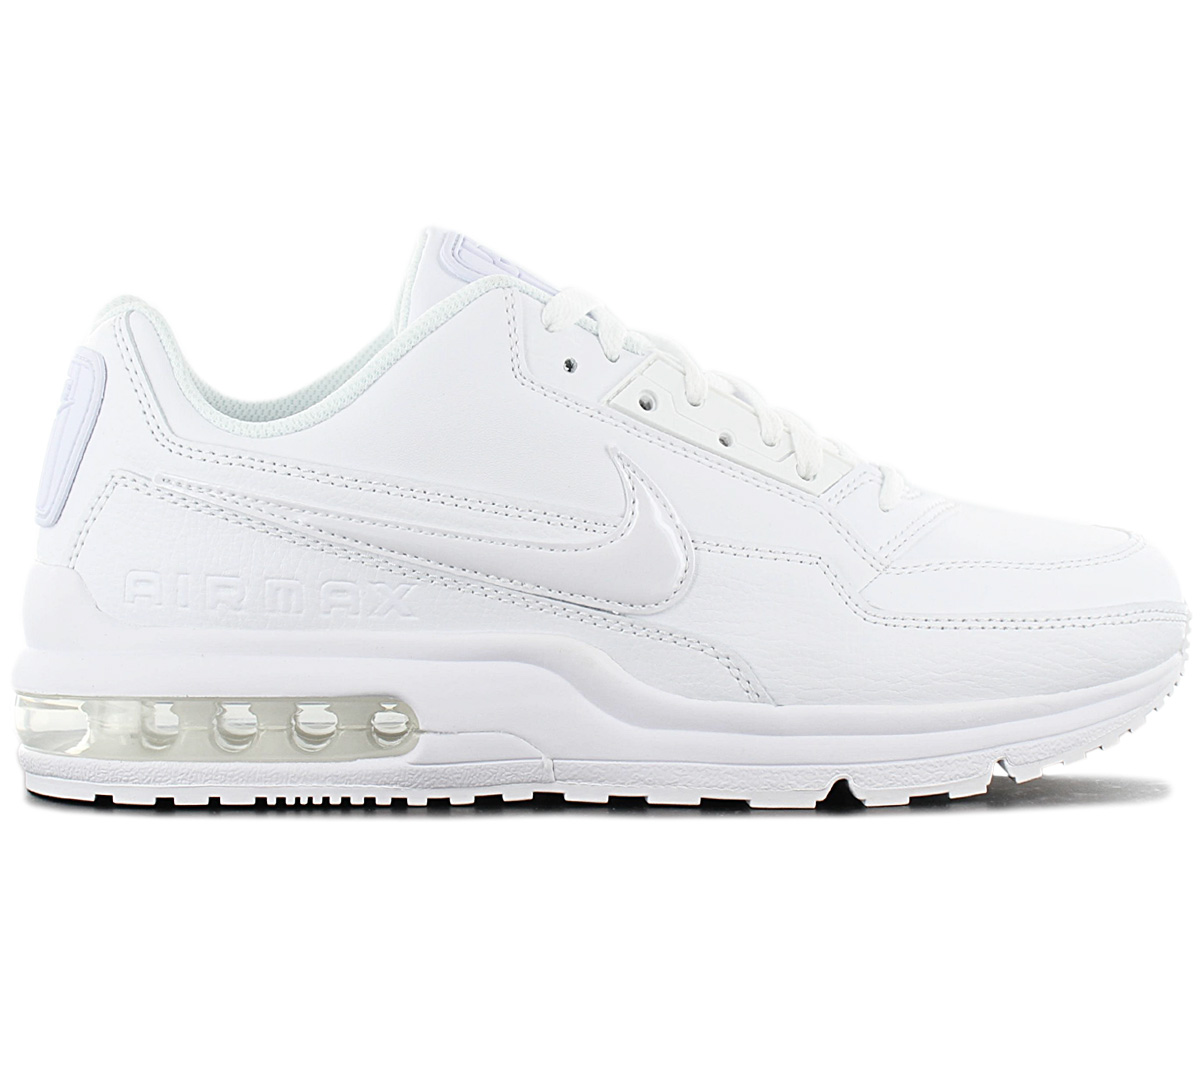 Details about Nike air max Ltd 3 Men's Sneaker 687977 111 White Shoes Trainers Sport Shoes